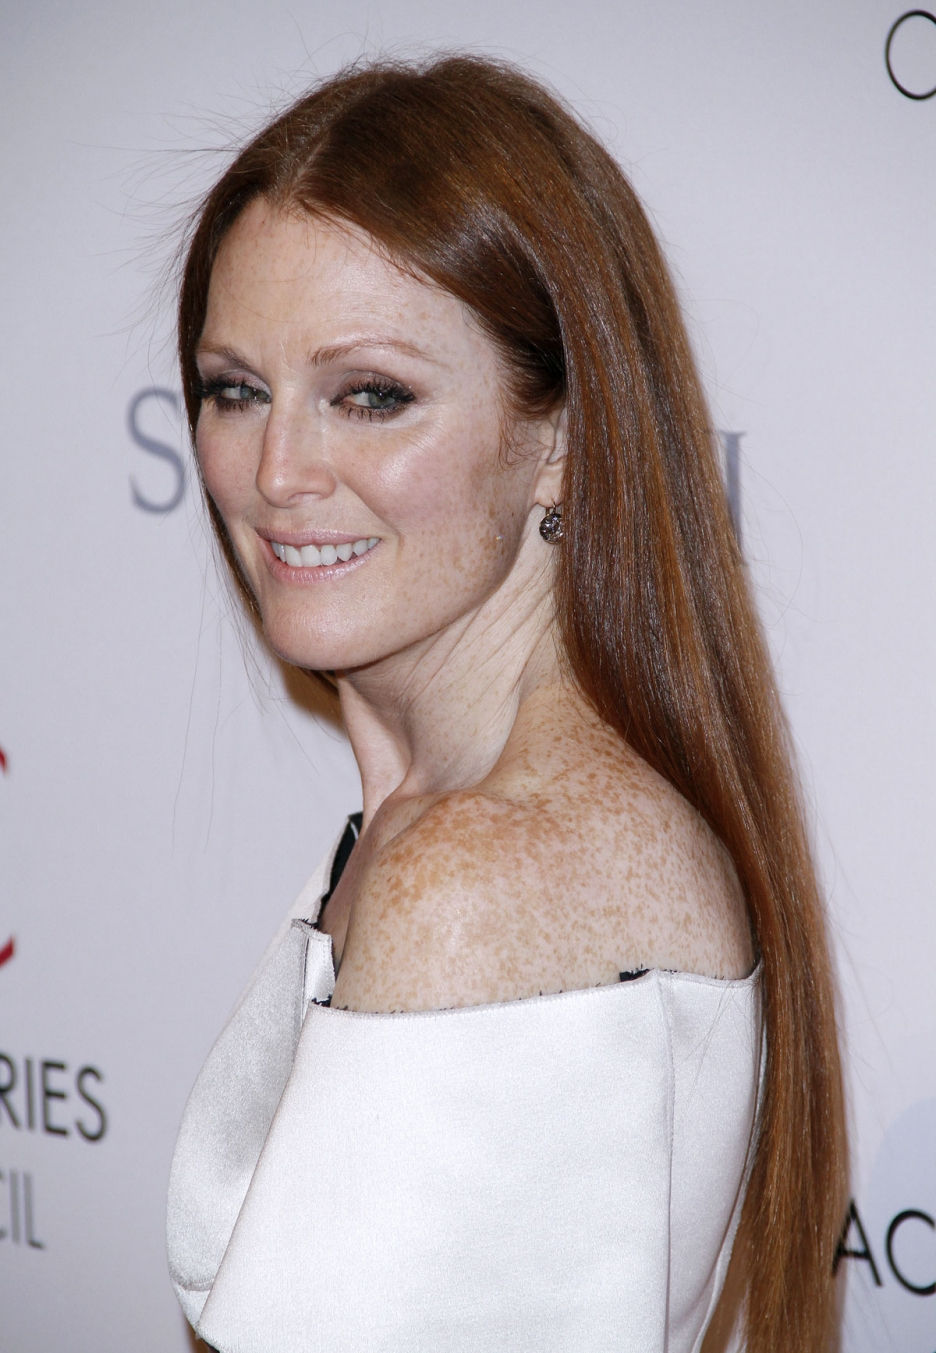 JULIANNE MOORE Bra Size, Age, Weight, Height, Measurements